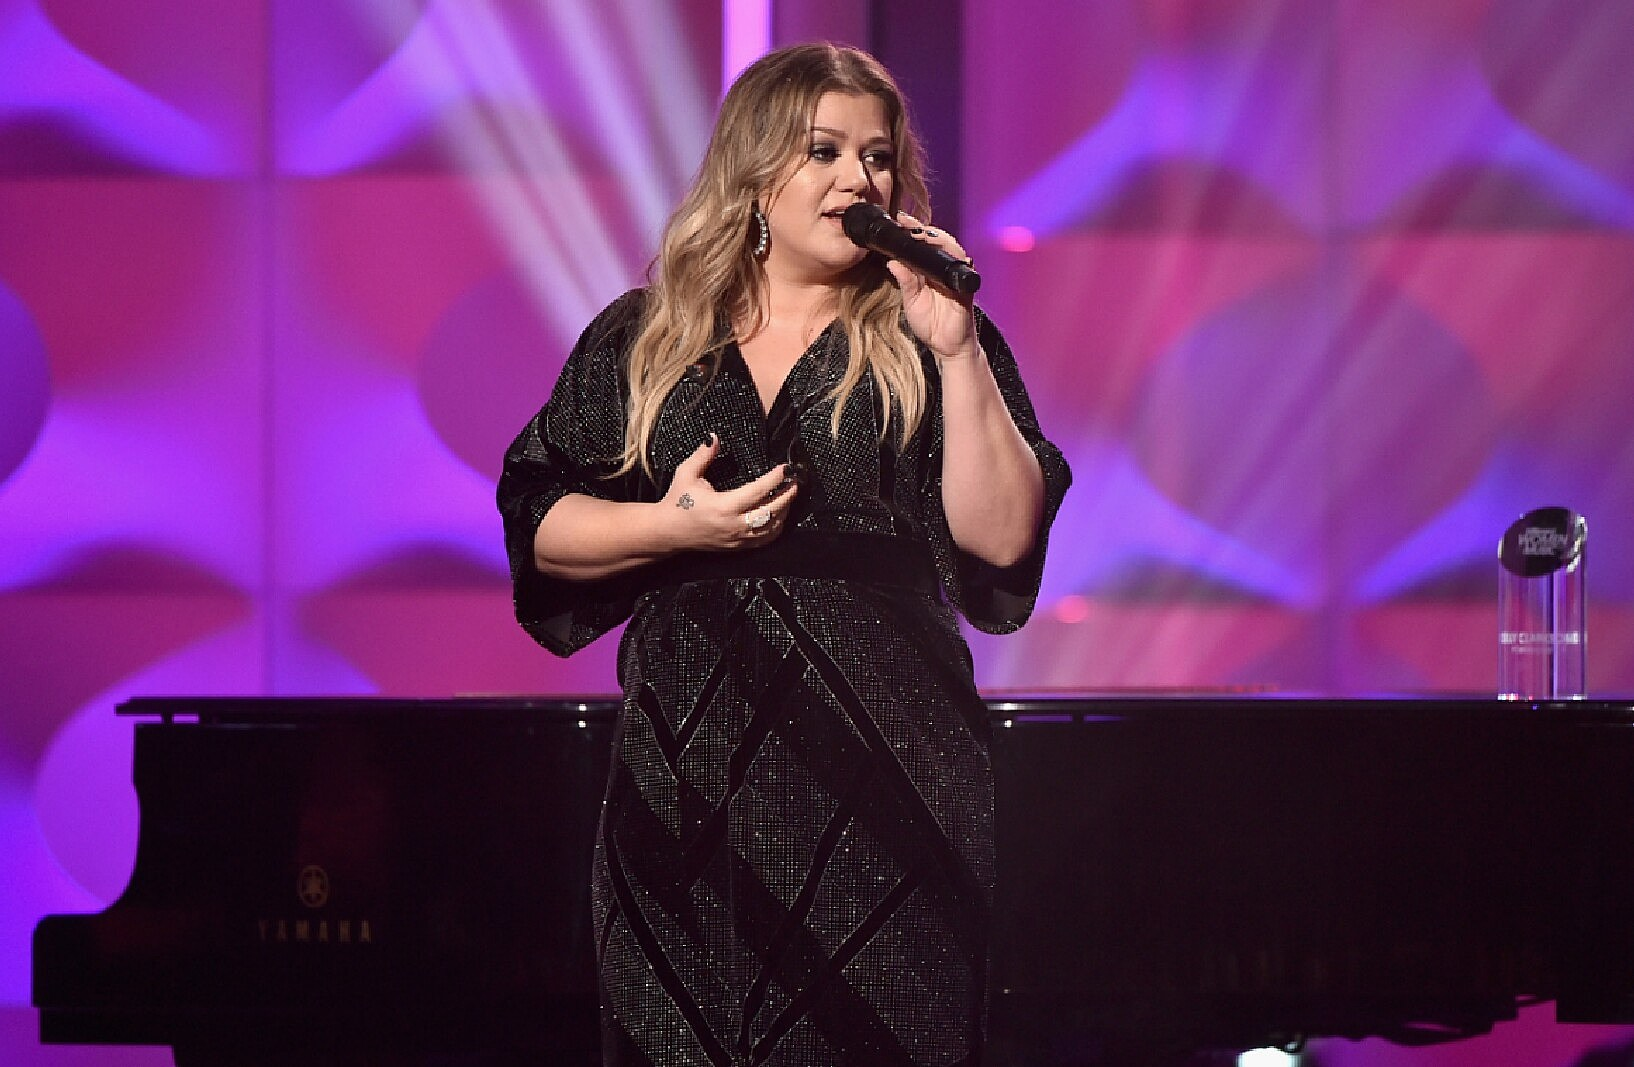 See the Kelly Clarkson Live Performance from The Voice Stage